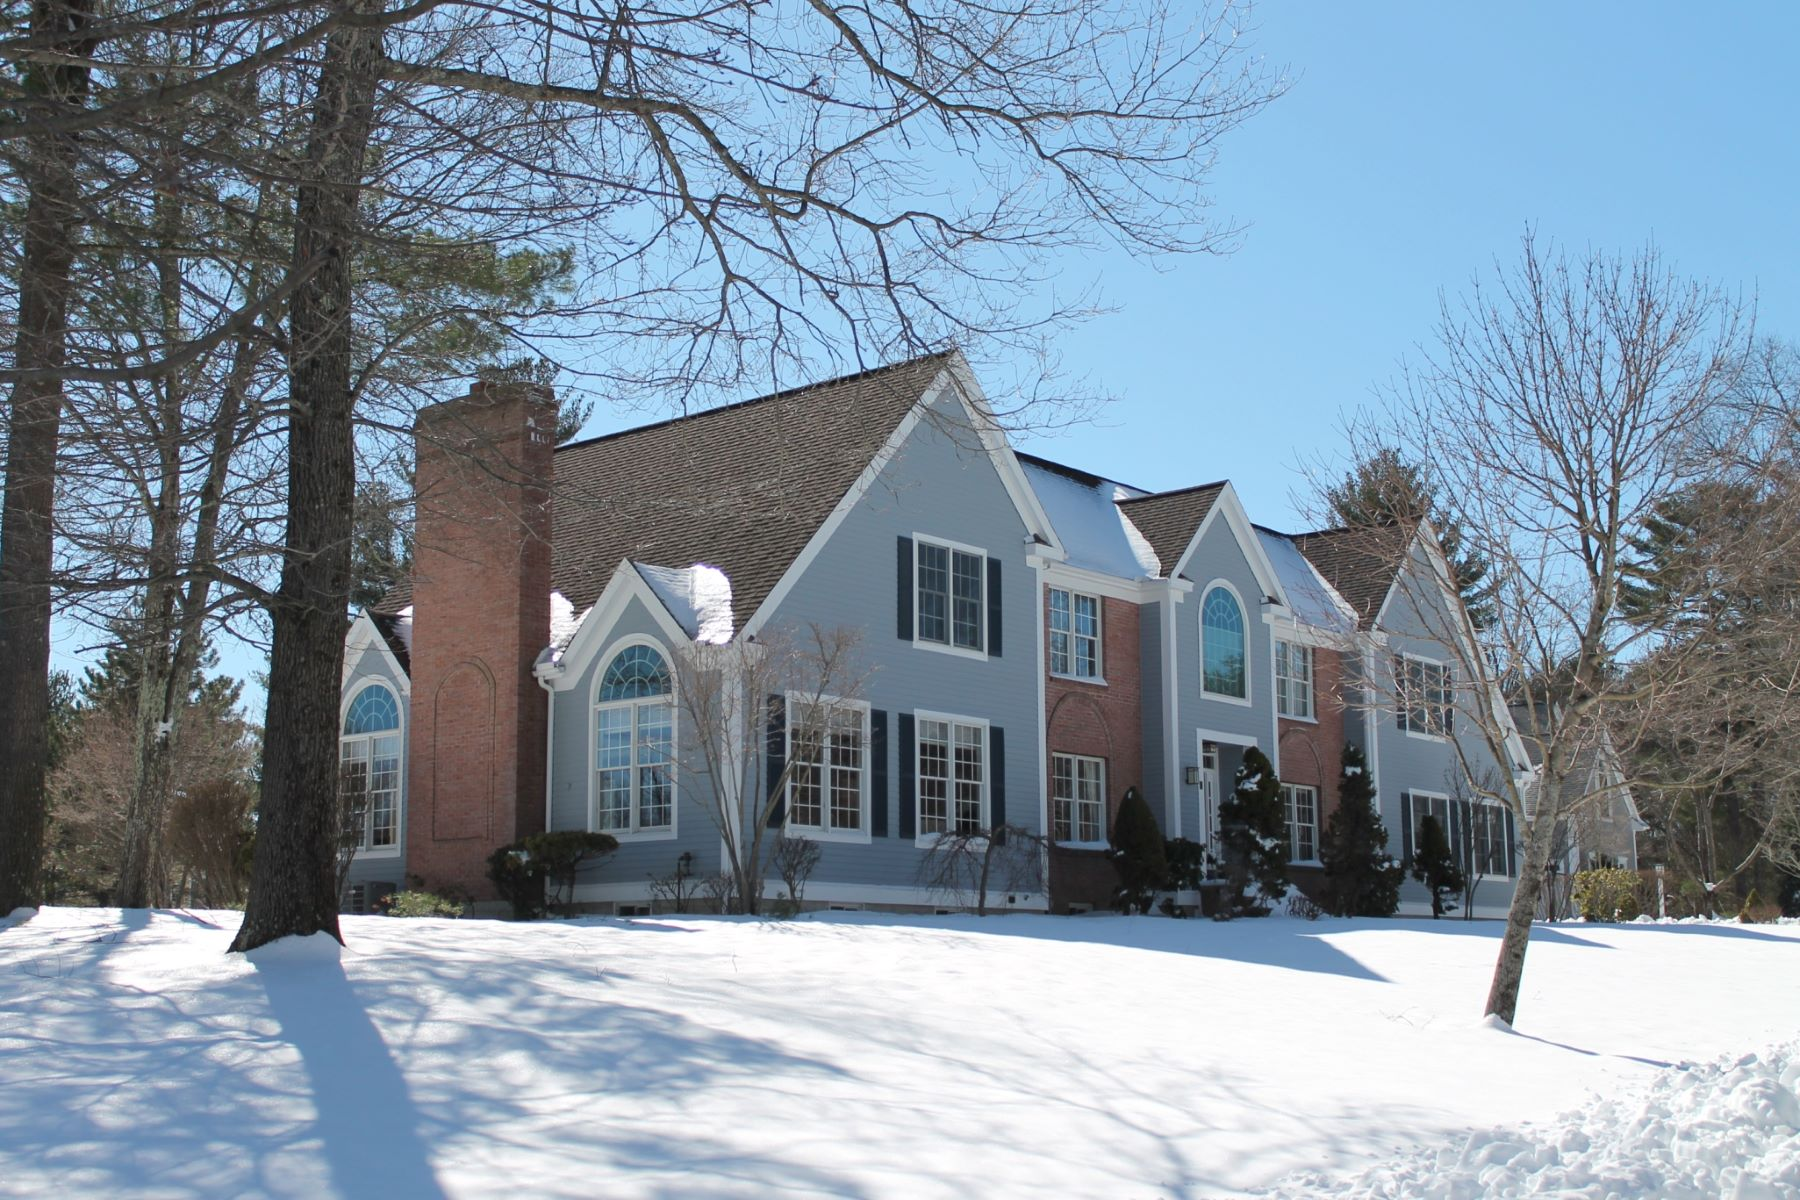 Single Family Home for Sale at Revolutionary Ridge! 2 Lexington Circle Bedford, Massachusetts 01730 United States